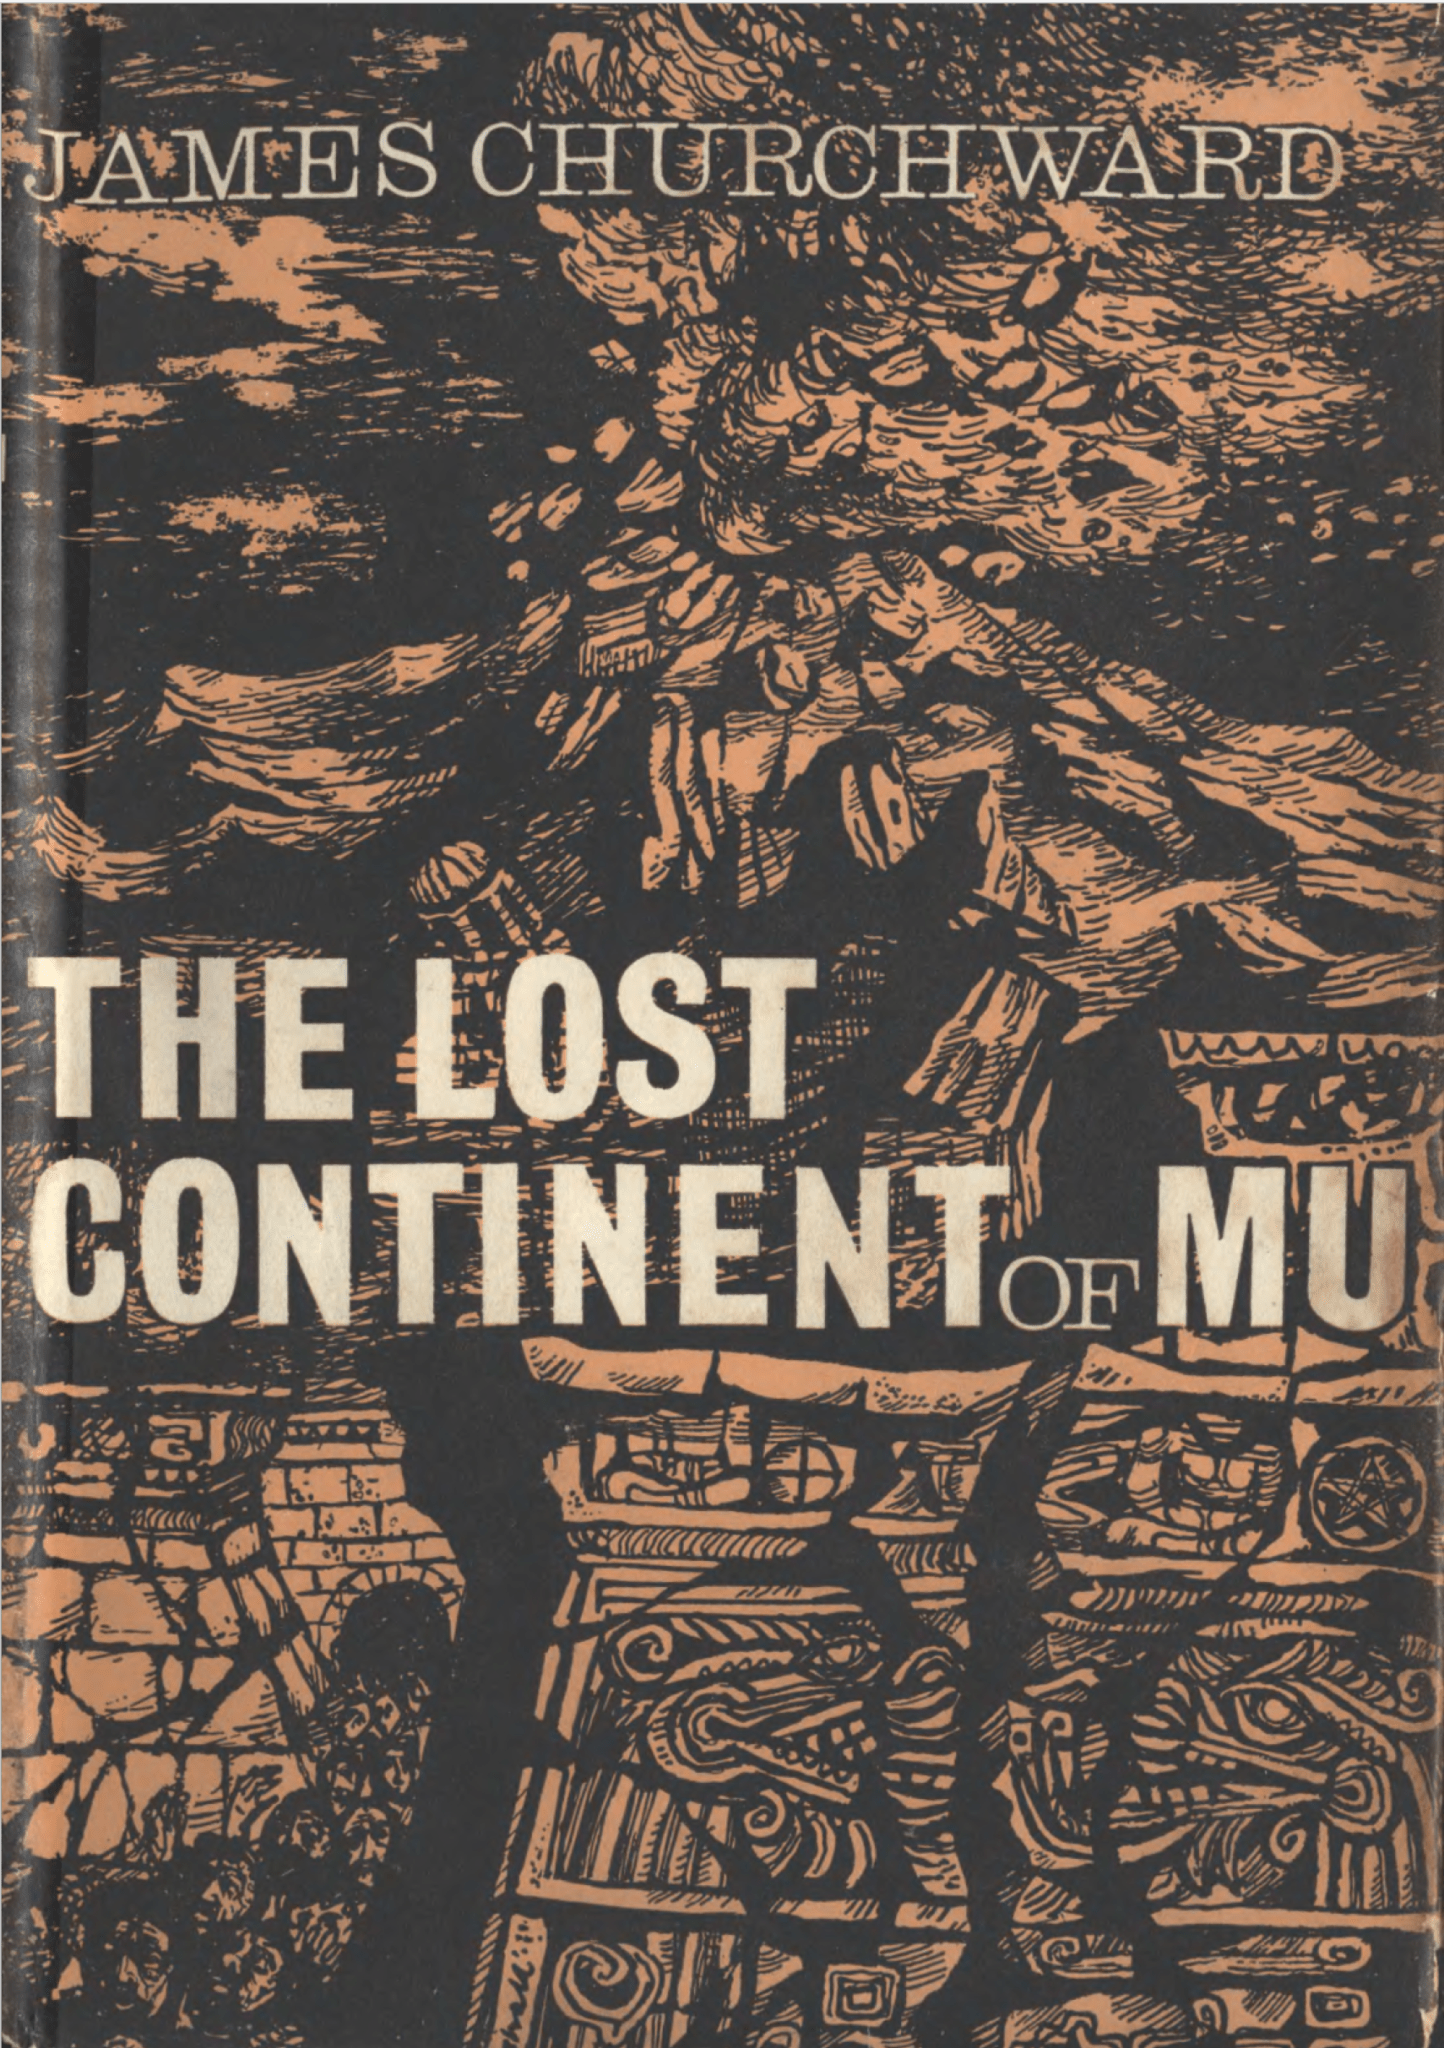 Screenshot 2020 02 09 at 15.36.12 - The Lost Continent of Mu, the Motherland of Men